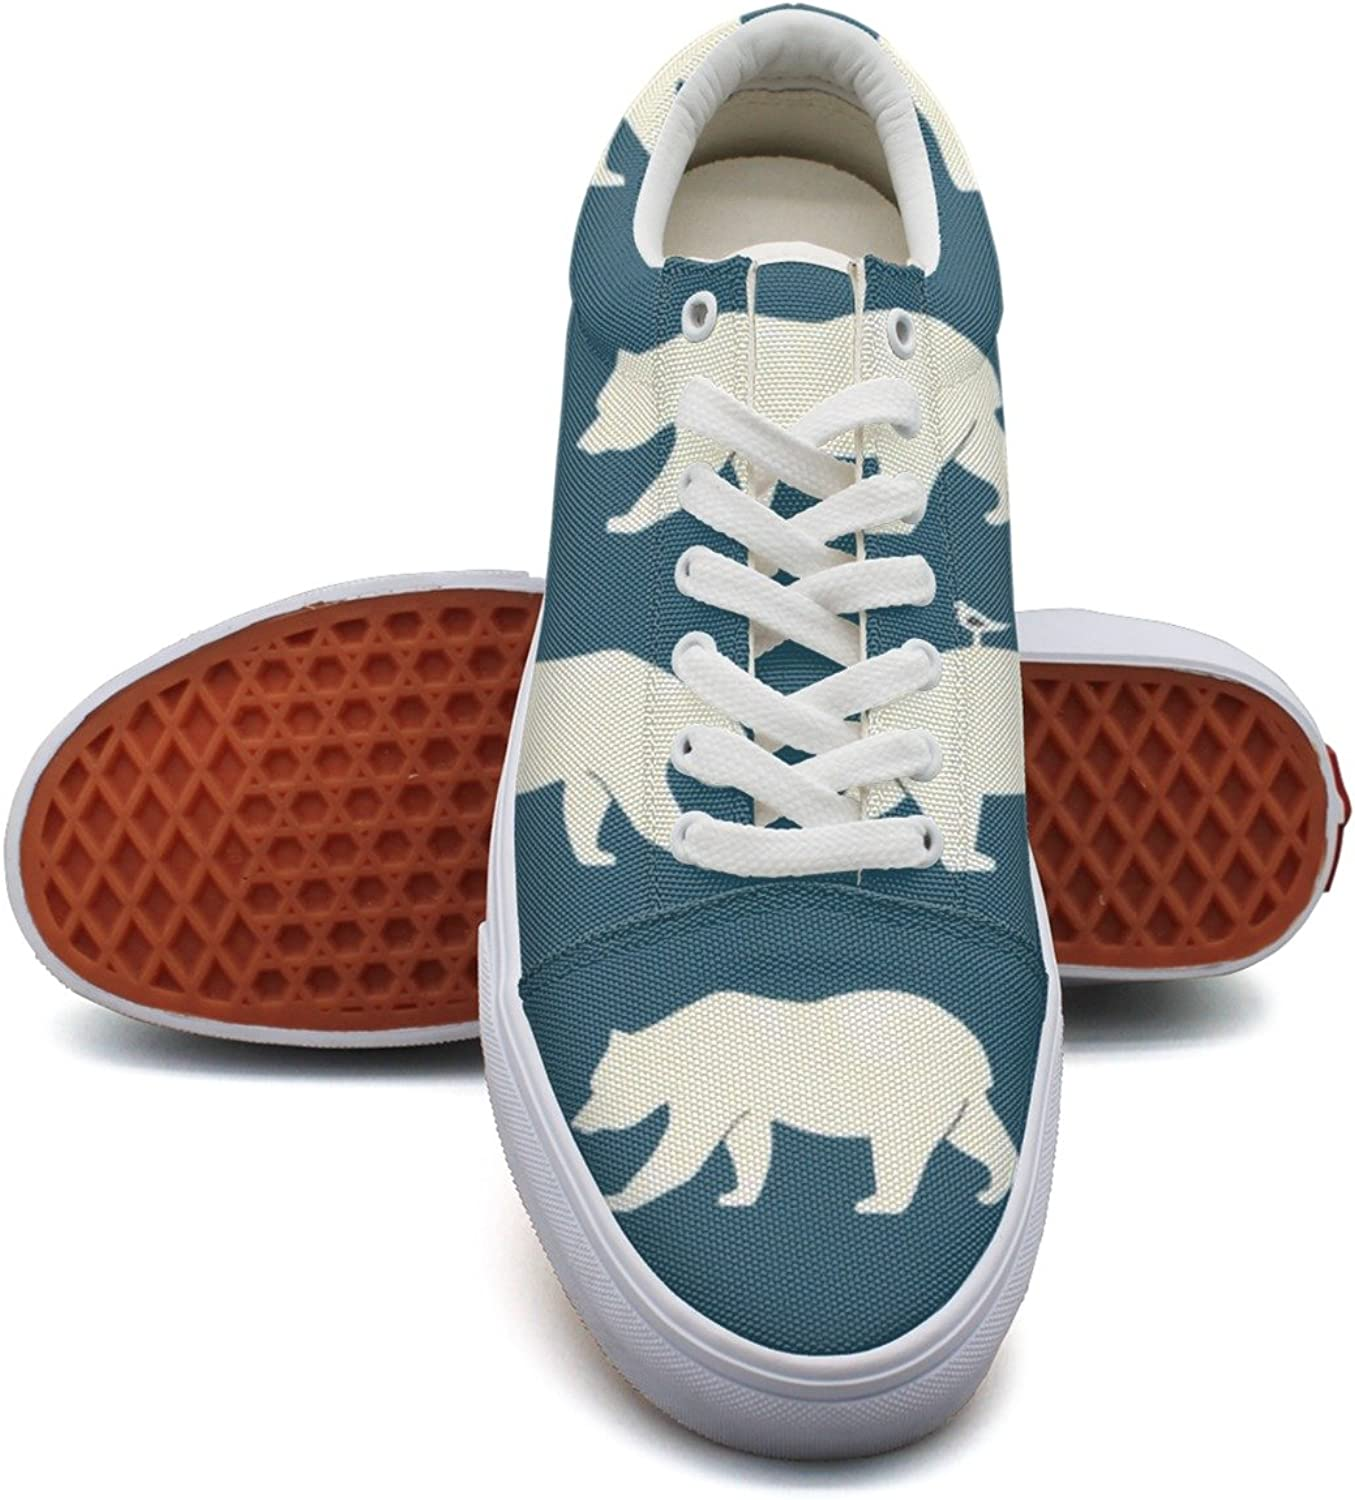 Bears Bear Repeat bluee Fashion Canvas Sneaker shoes For Womns 3D Printed Low Top shoes